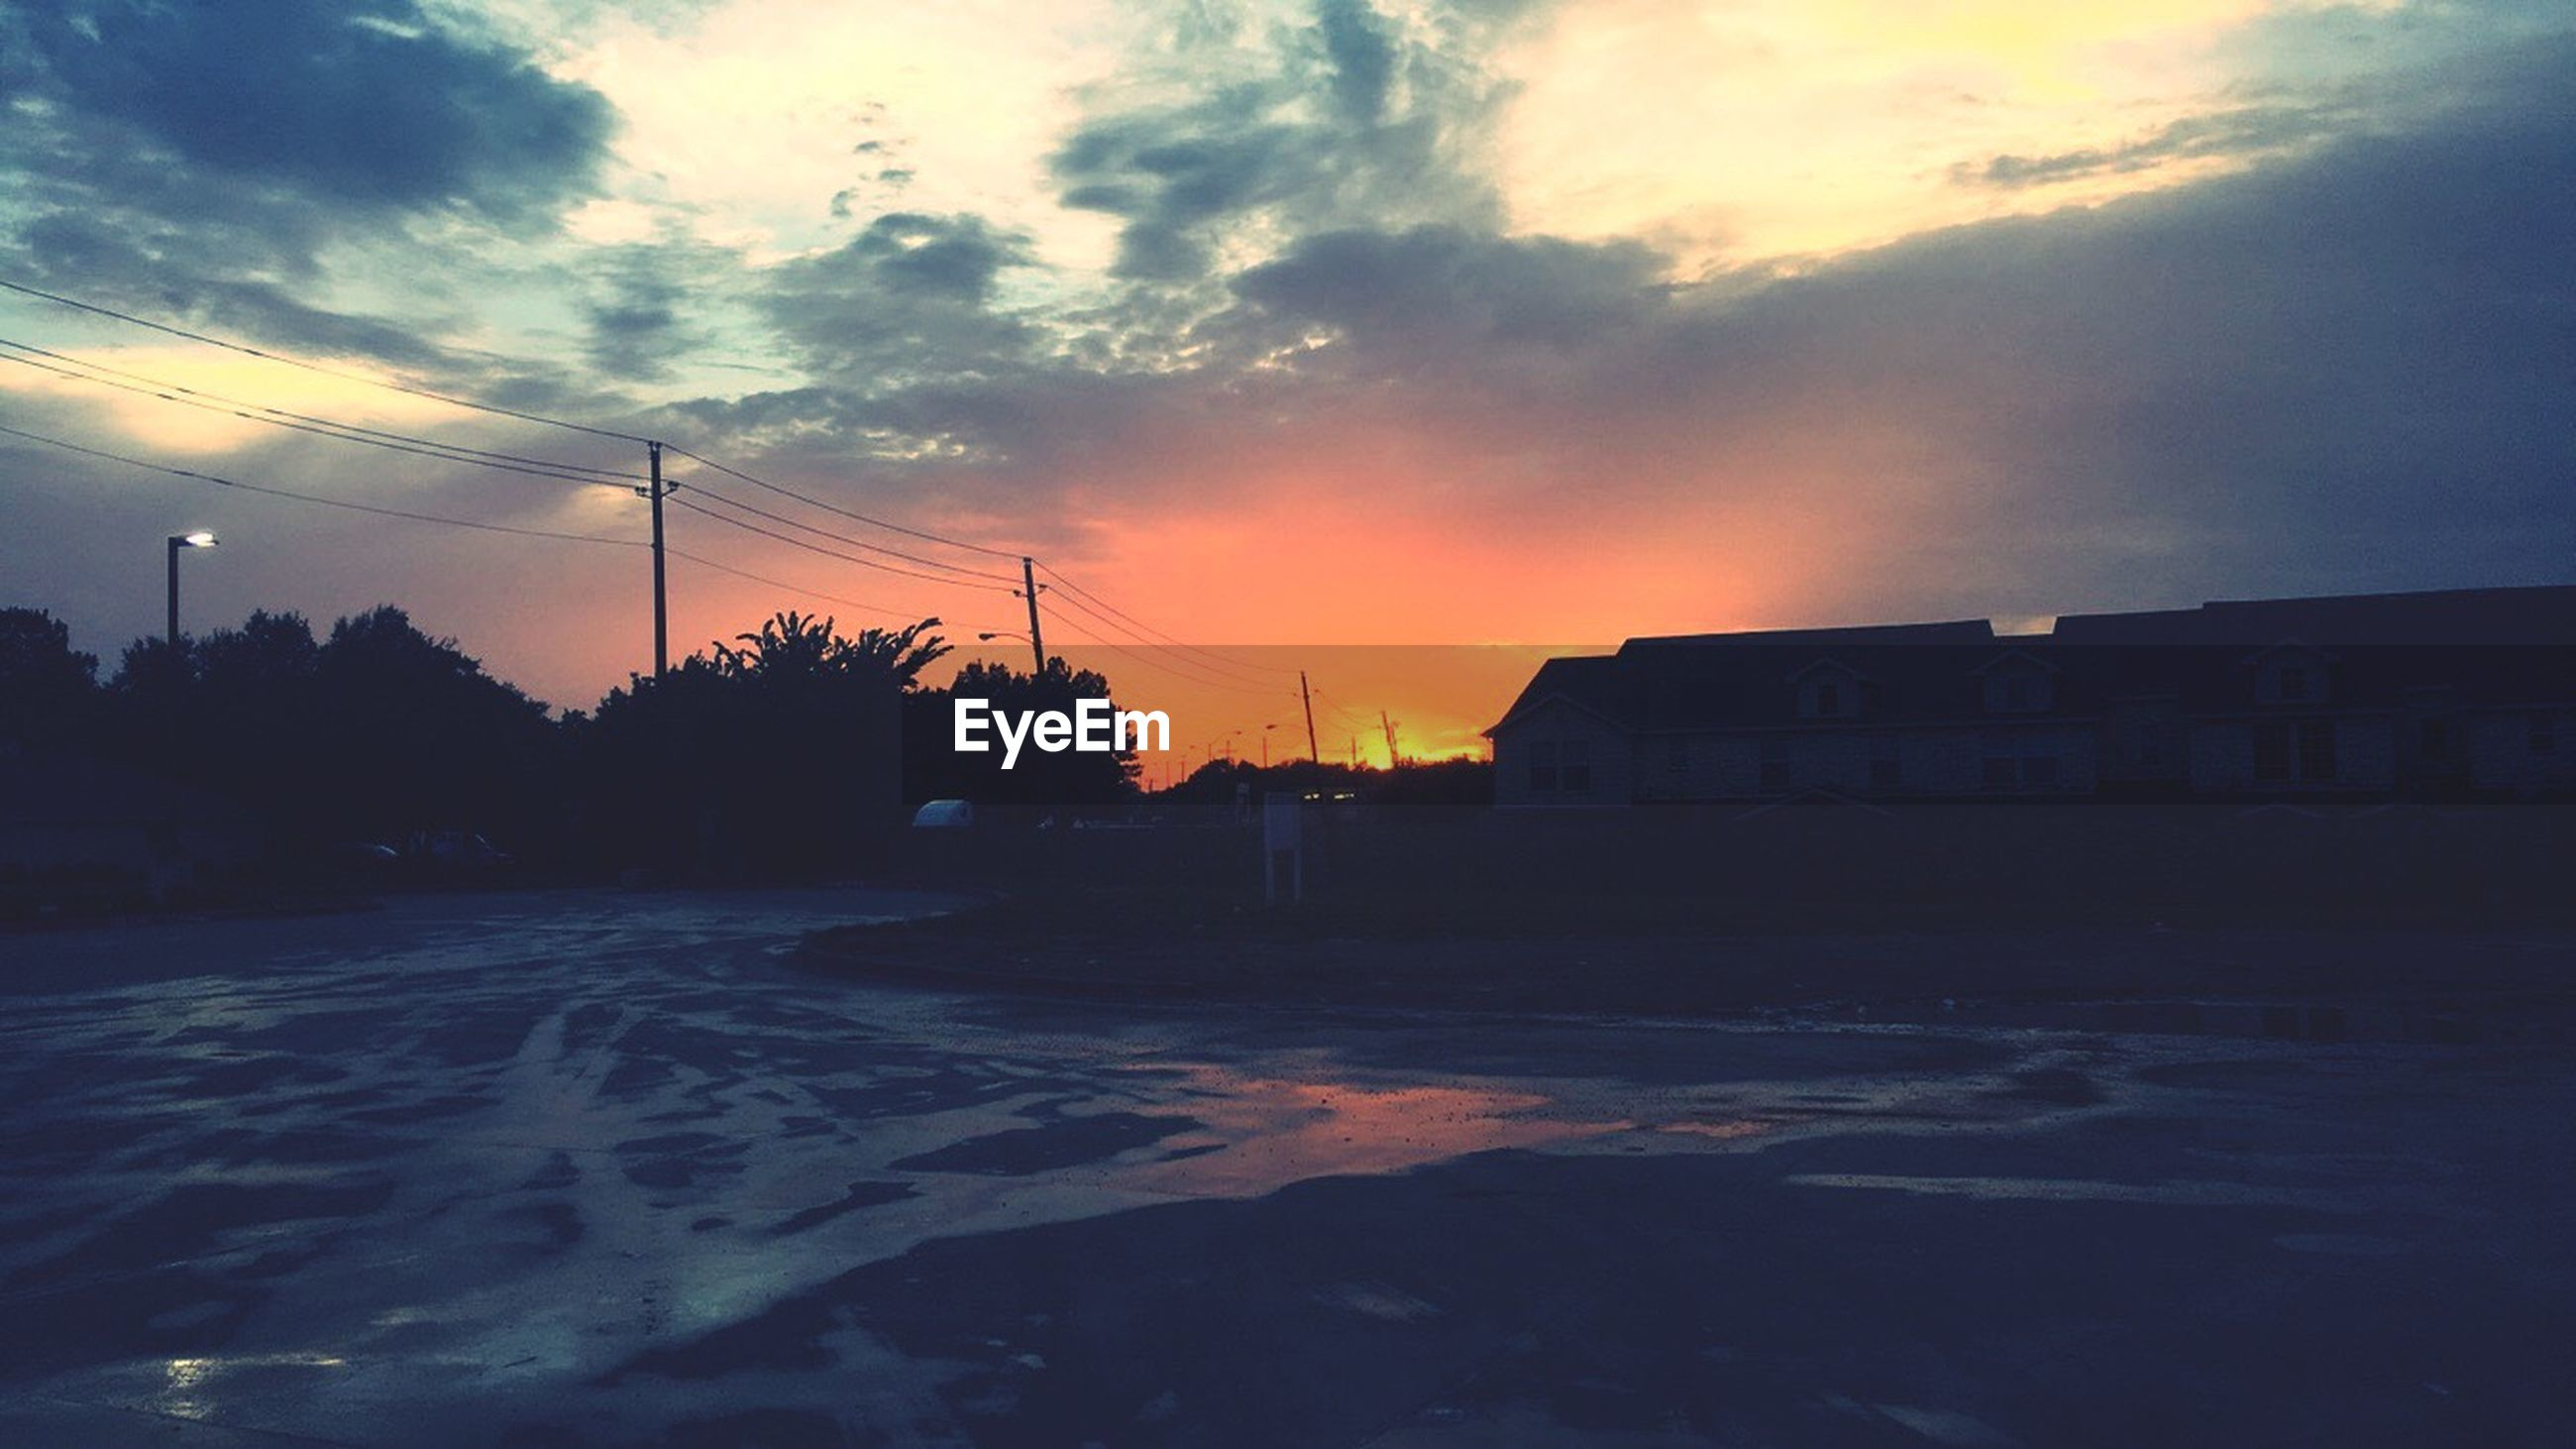 sunset, street, road, empty, transportation, cloud, silhouette, sky, long, tranquil scene, building exterior, orange color, outdoors, dark, nature, scenics, tranquility, the way forward, outline, cloud - sky, solitude, cloudy, beauty in nature, surface level, remote